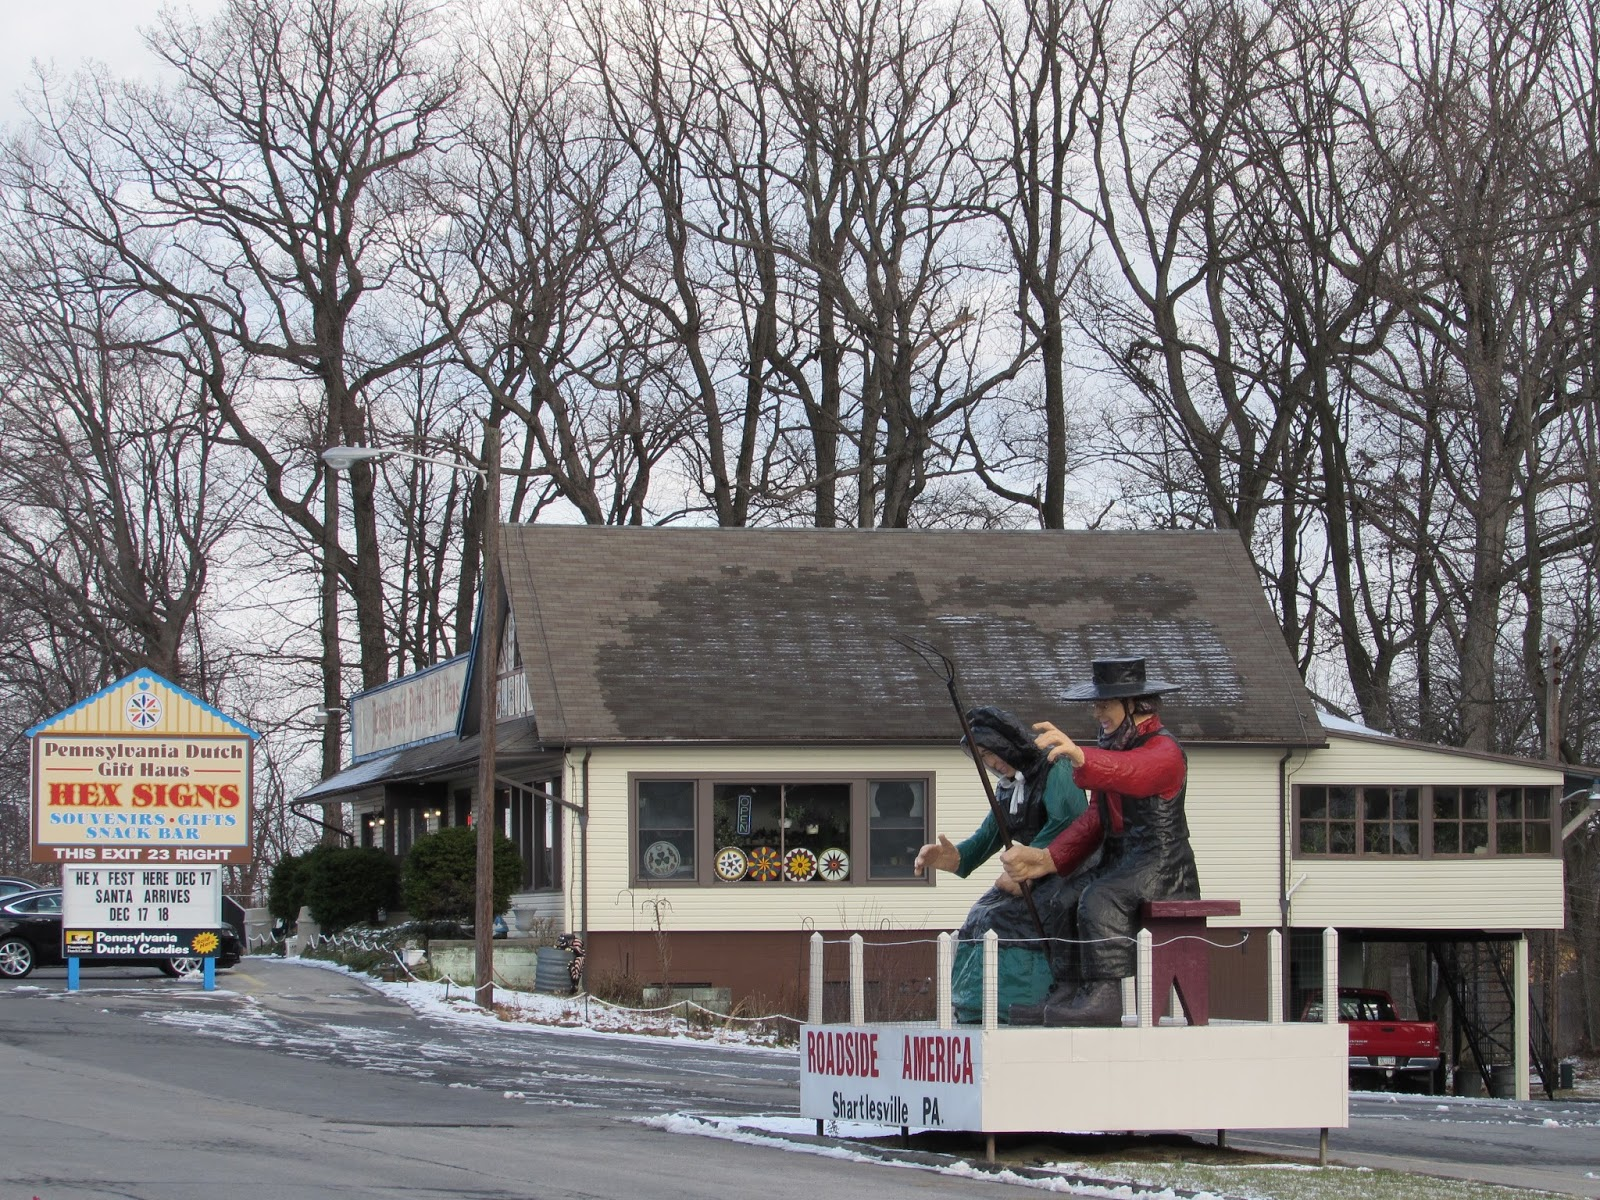 31+ PA Oddities: Neat &/or Quirky Roadside Americana